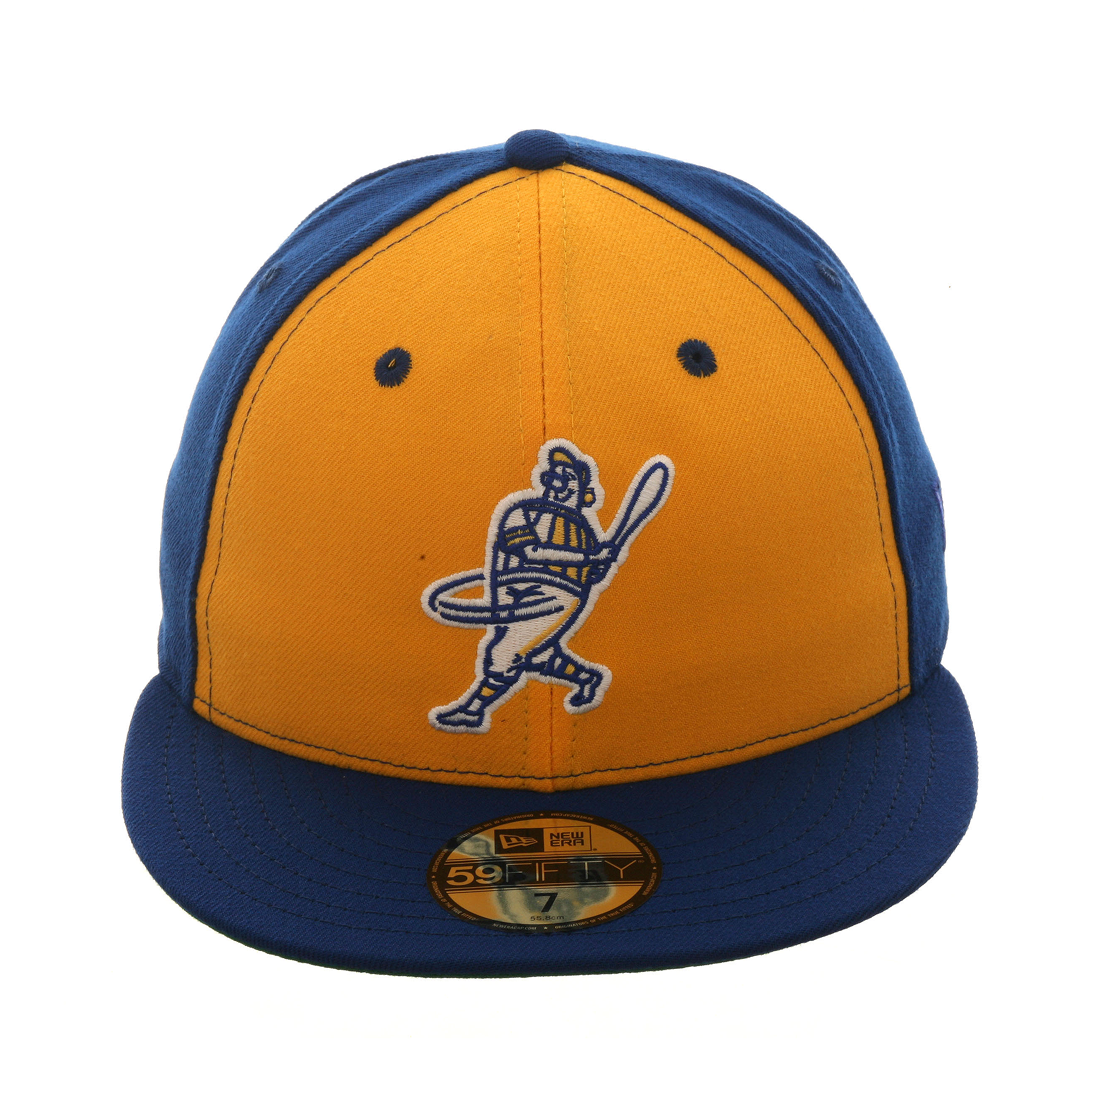 bcc9bb5f00a Exclusive New Era 59Fifty Milwaukee Brewers Barrel Man Rail Hat - Gold